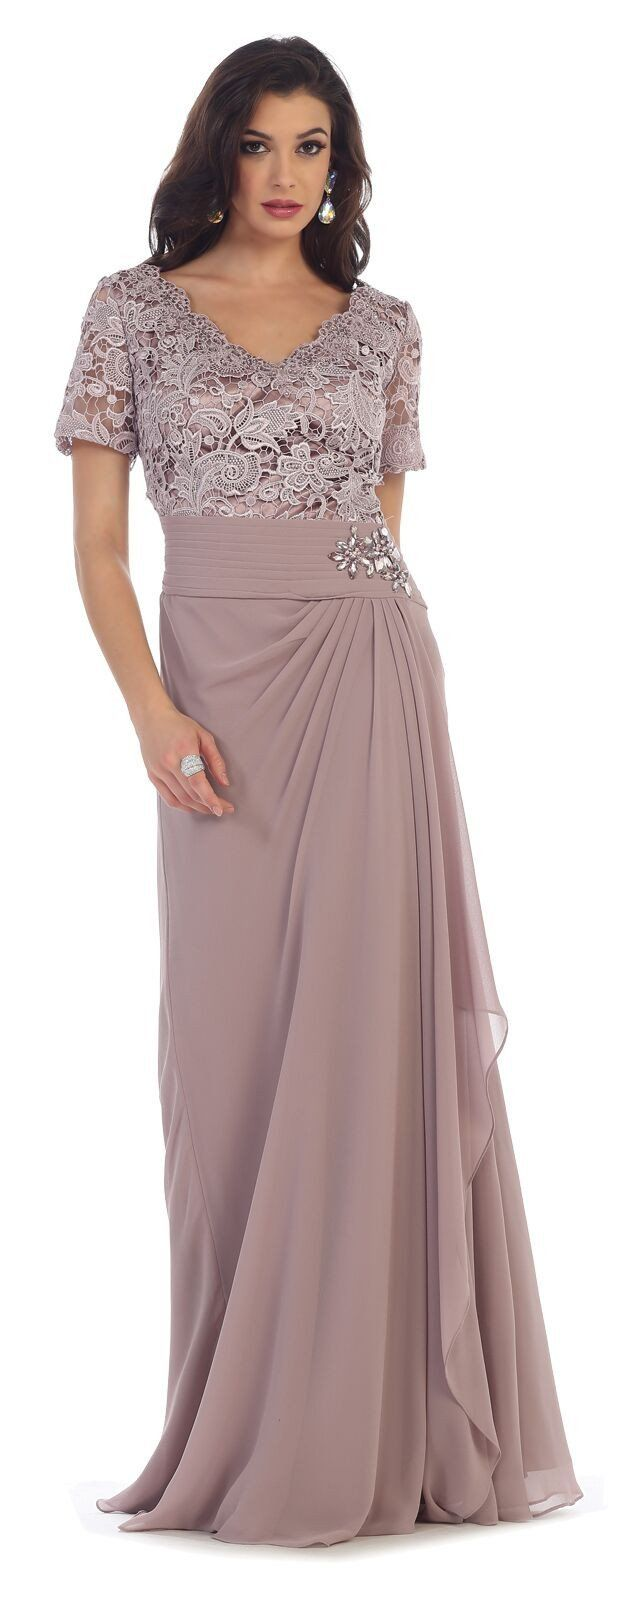 This Elegant Mother Of The Bride Groom Floor Length Dress Comes With Short Sleeve Lace Broach And Pleated Chiffon Material